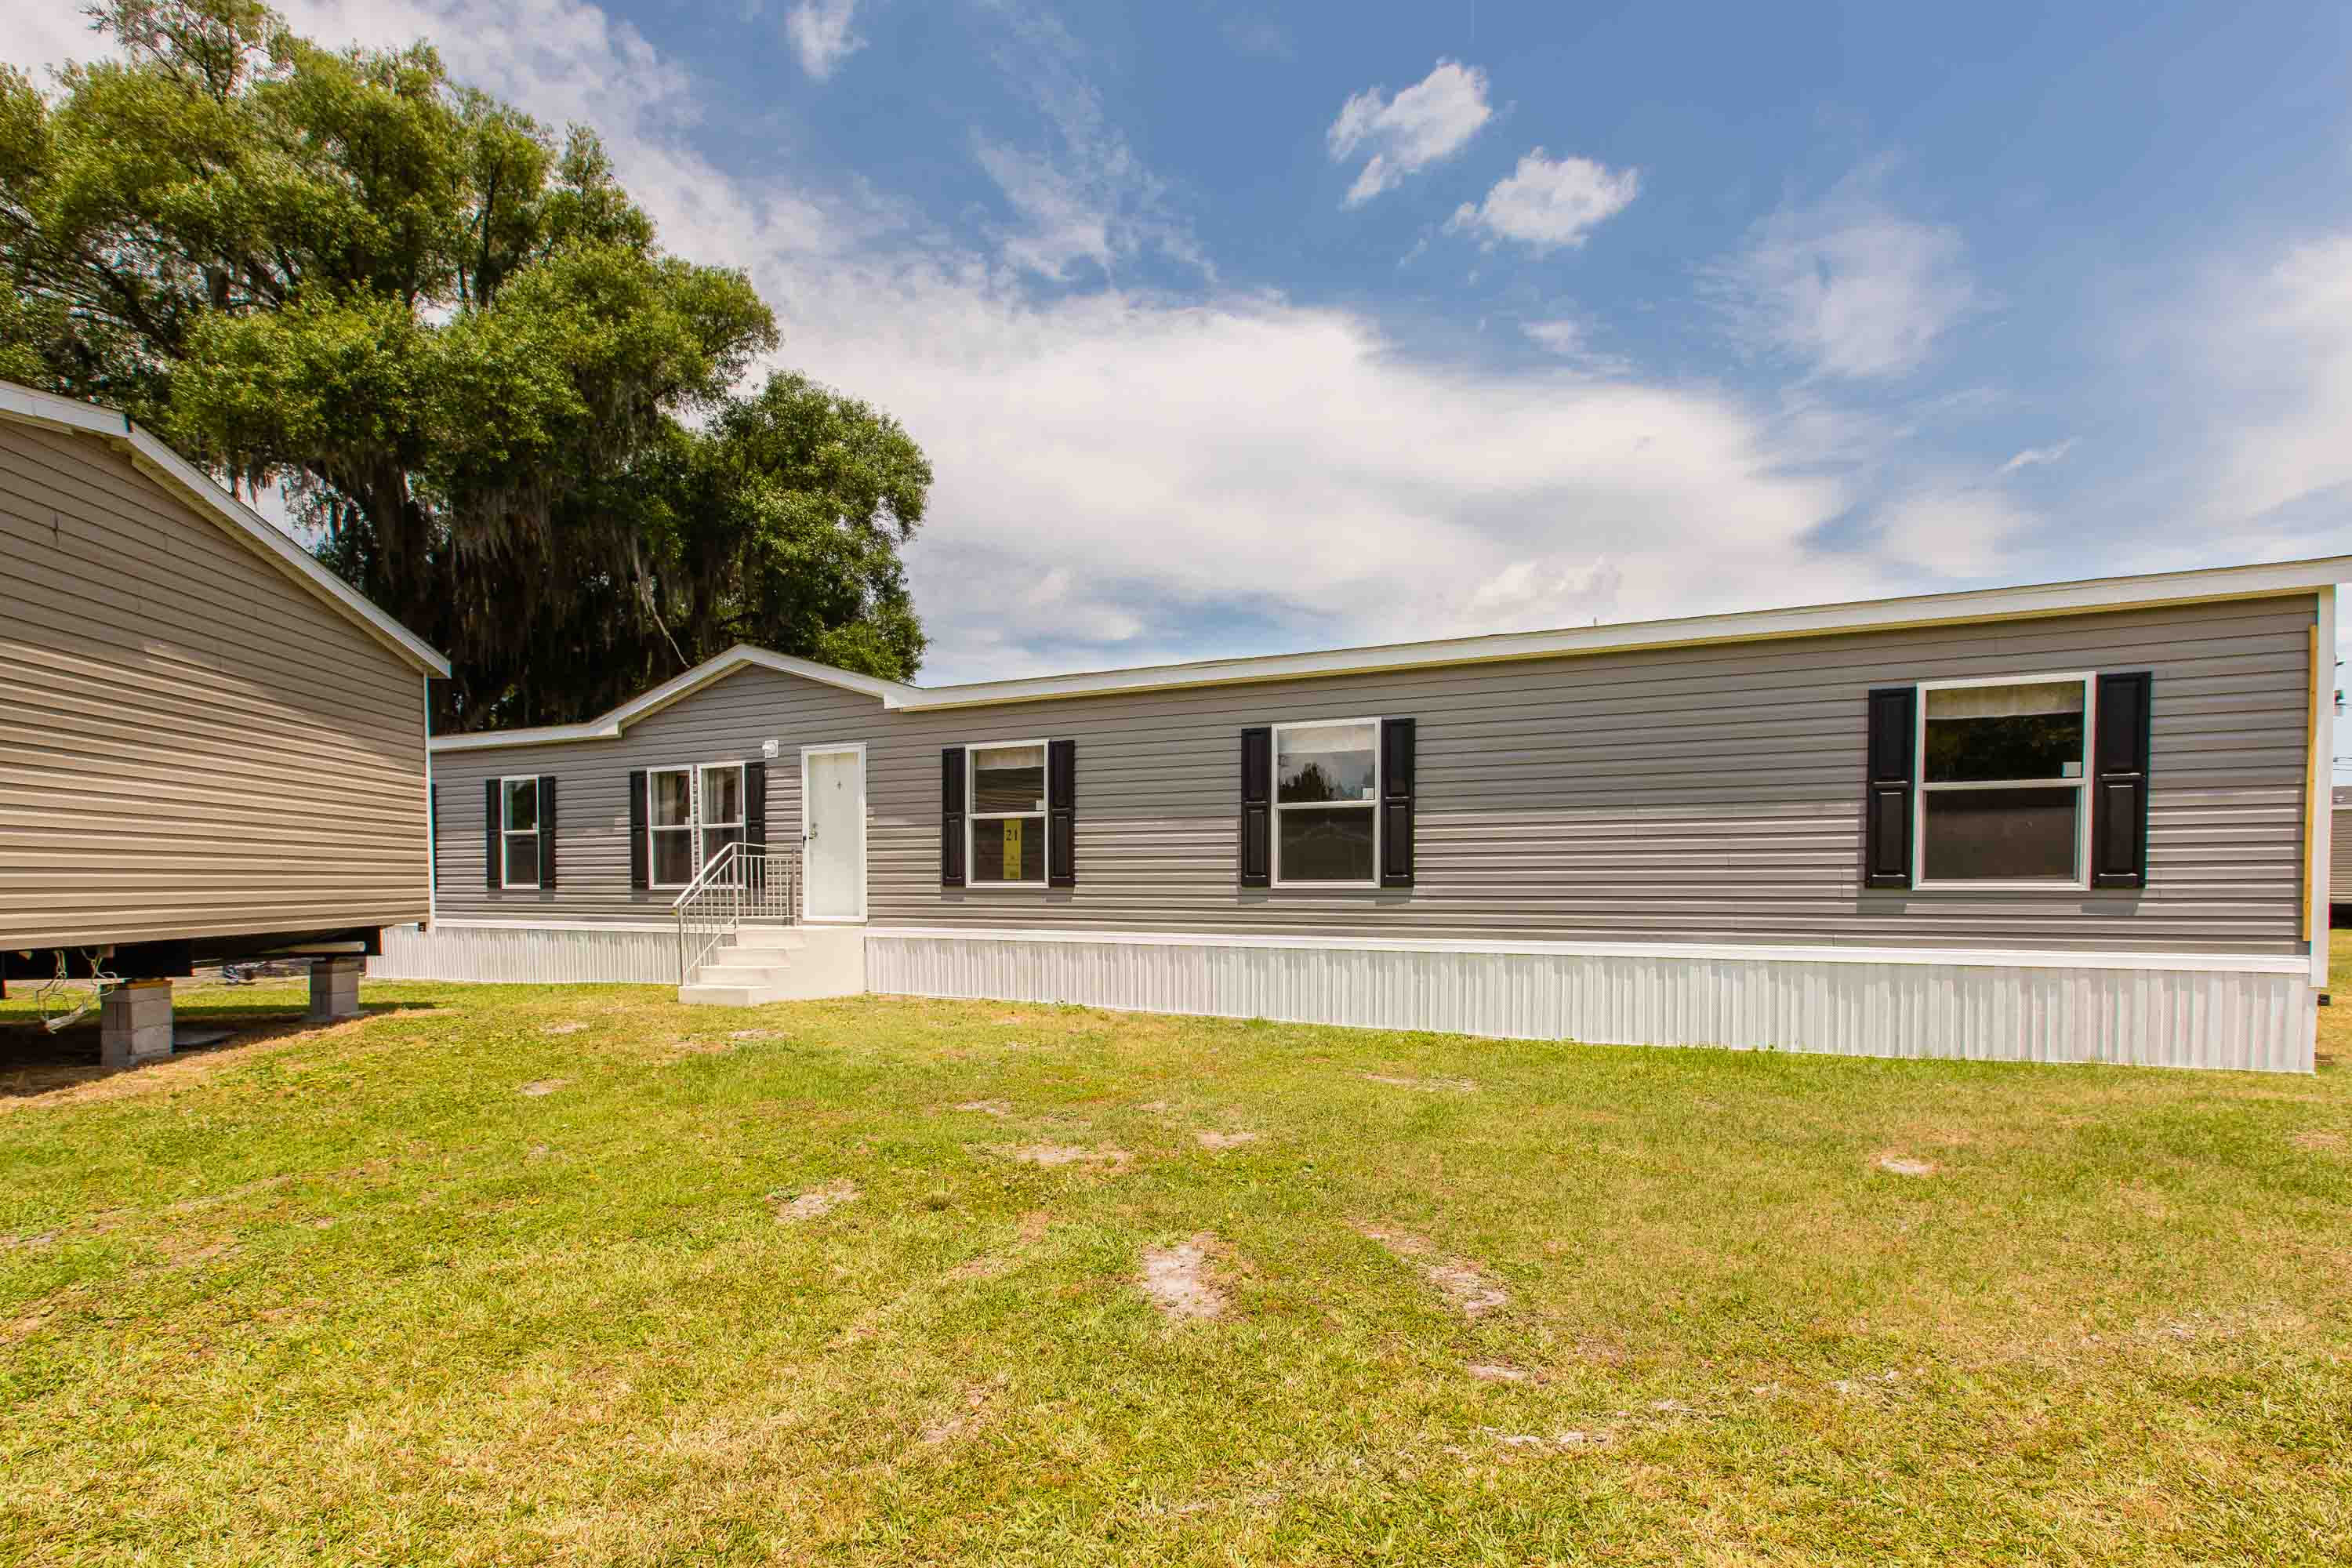 Double Wide Mobile Homes Georgia | Wayne Frier Mobile Homes | Mobile Homes for Sale Thomasville Ga